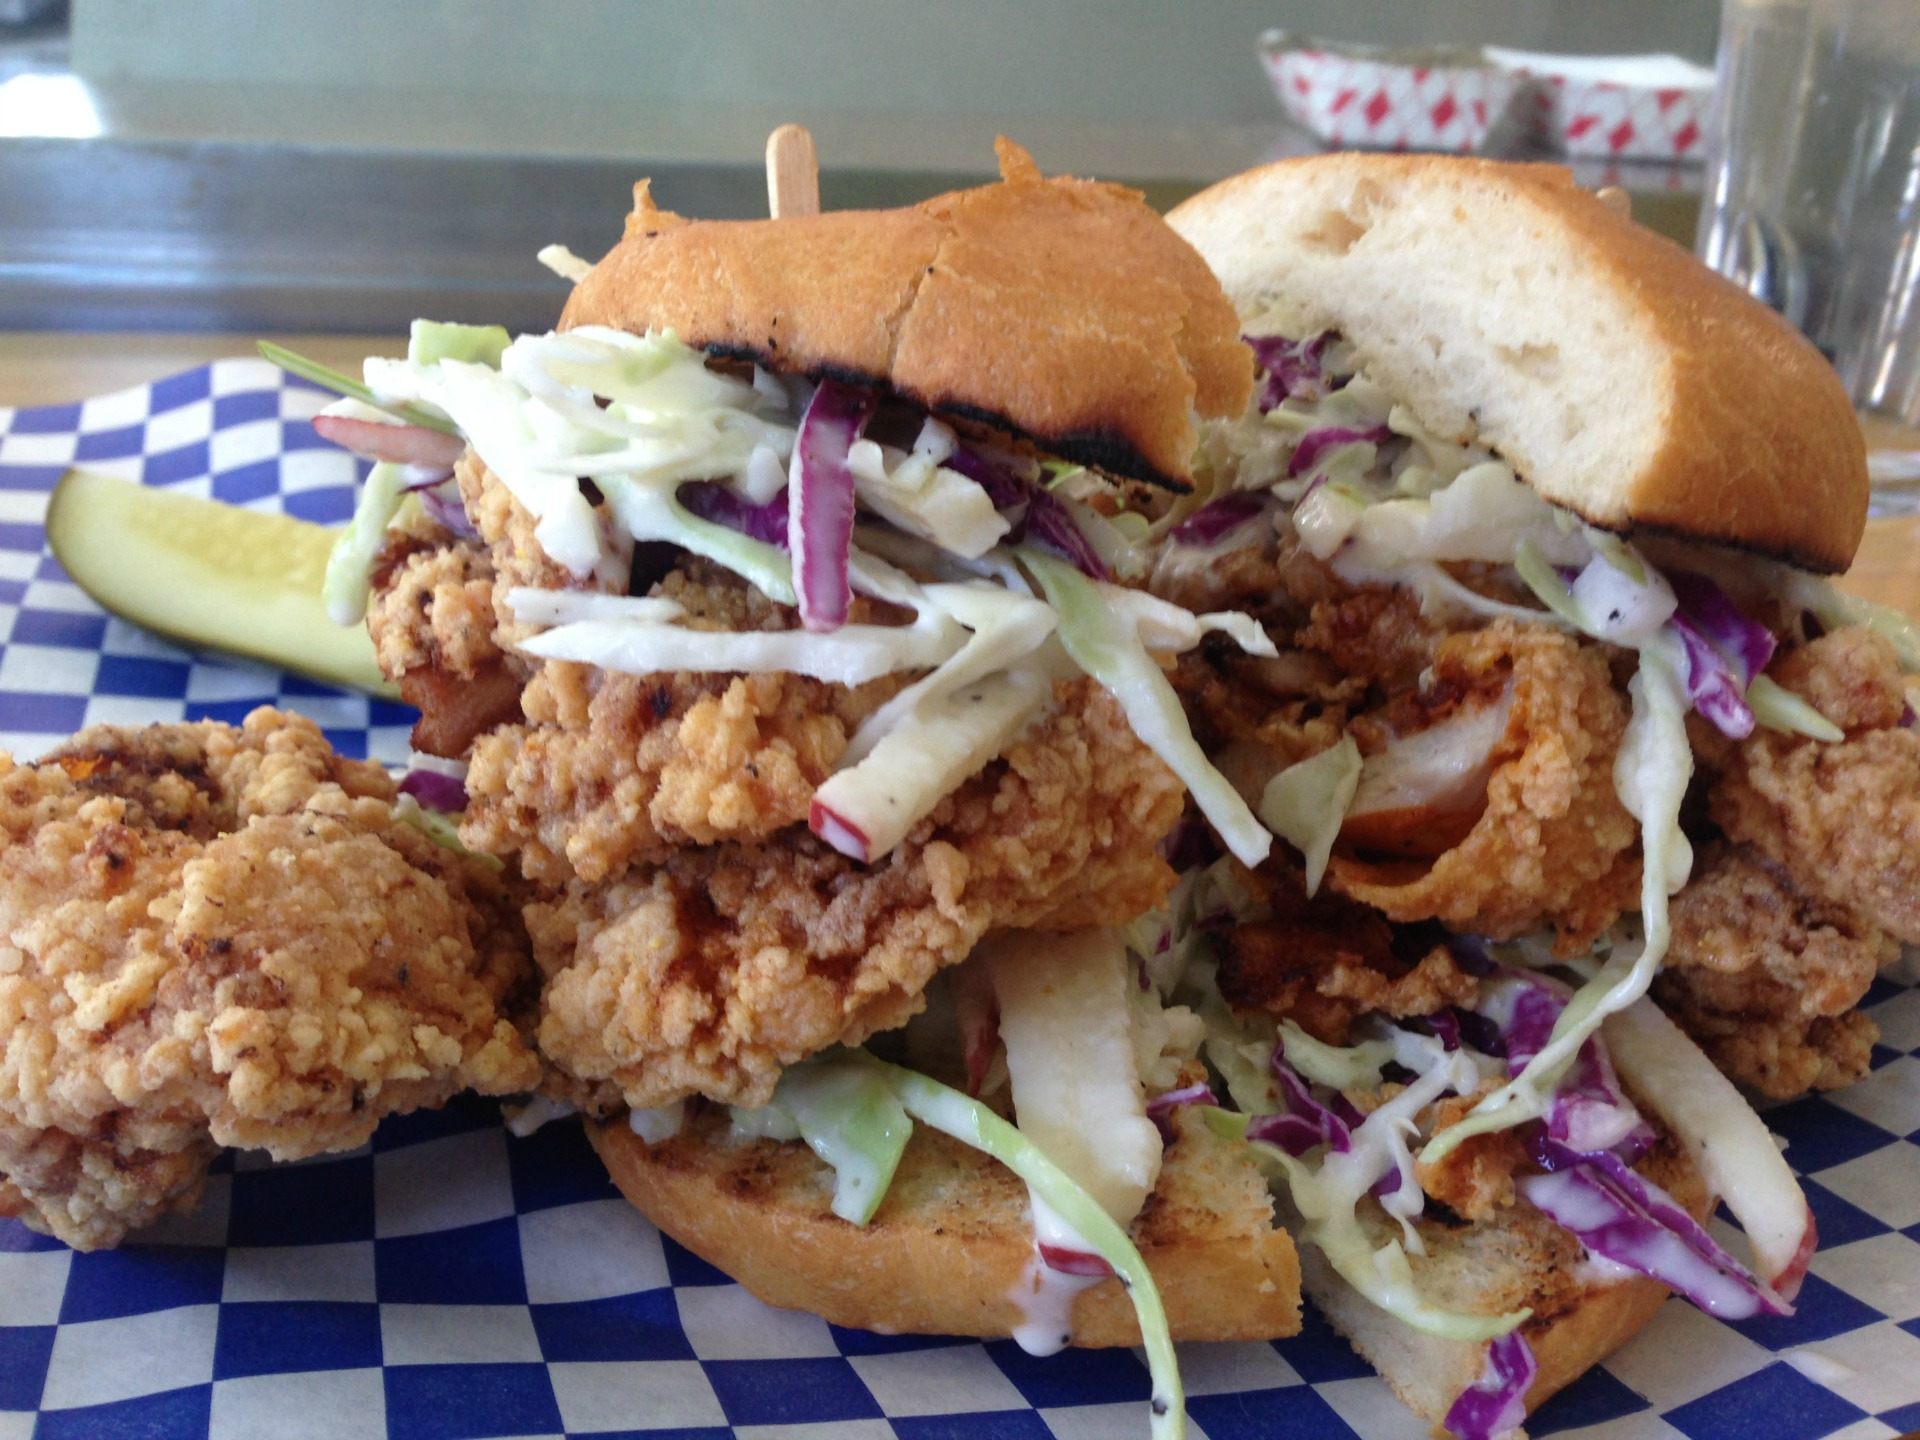 A giant fried chicken sandwich from Rhea's Cafe.